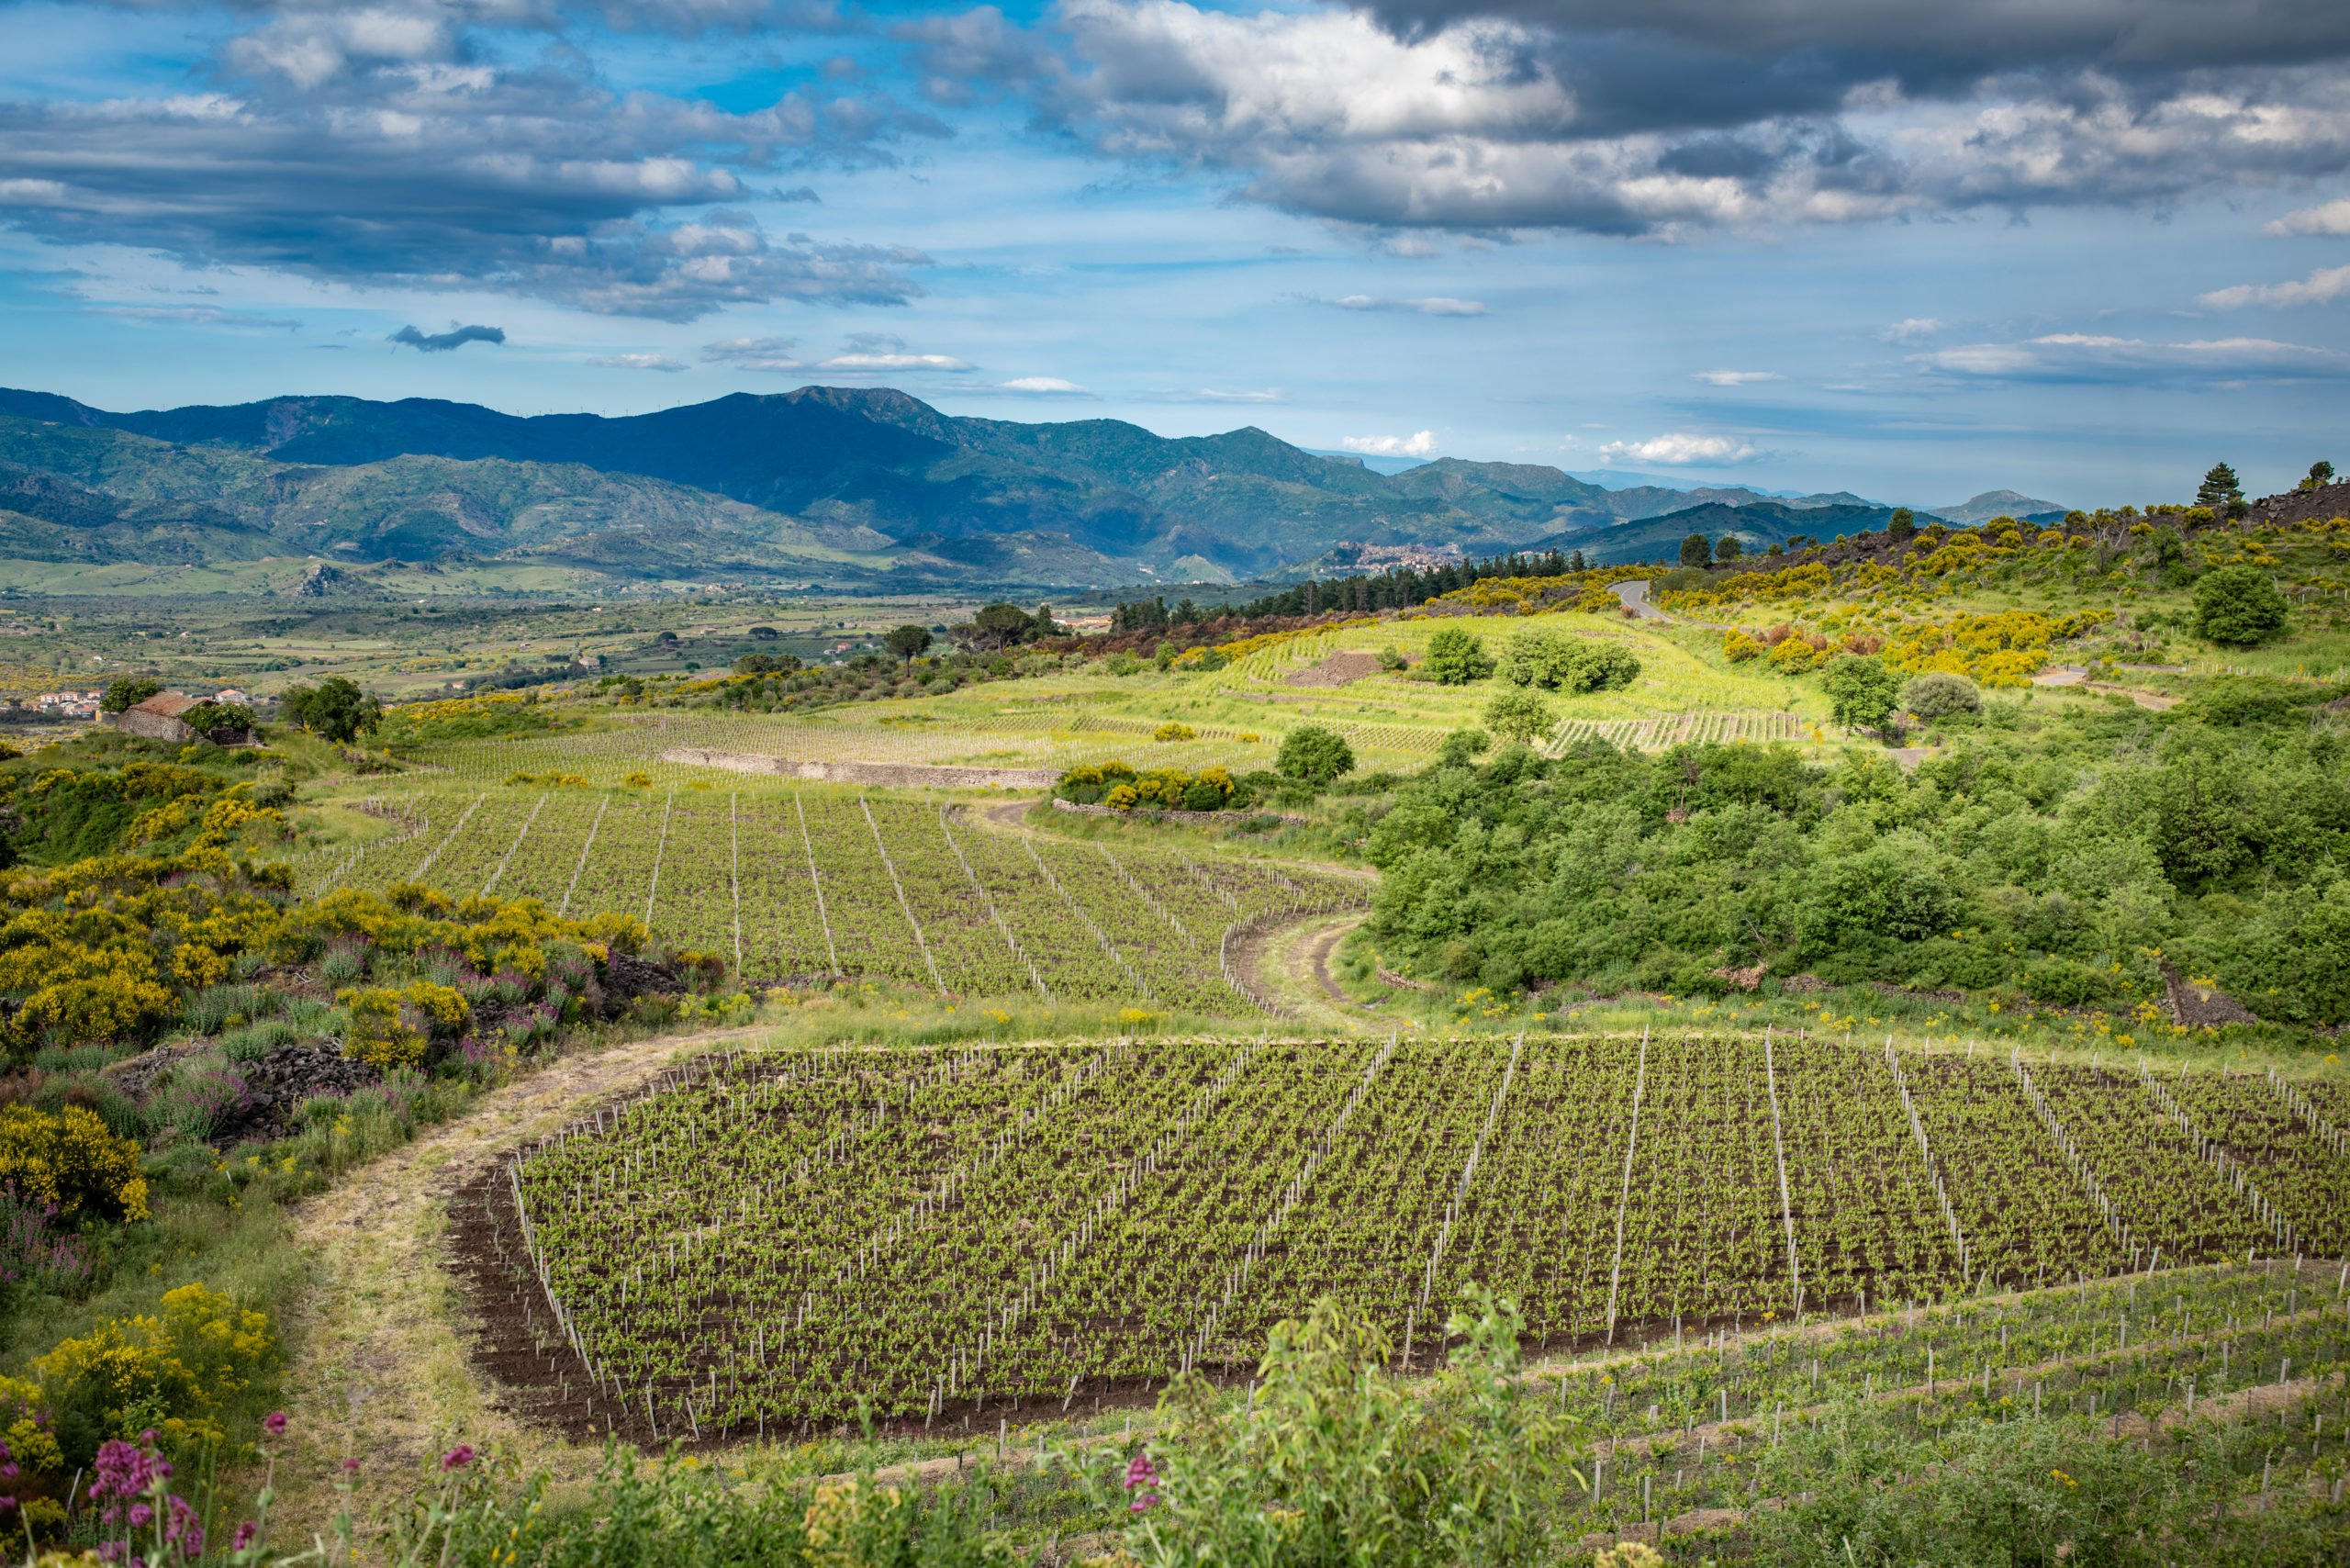 Try The Delicious Mt Etna Wines On The 8 Days Highlights Of Sicily Tour Package